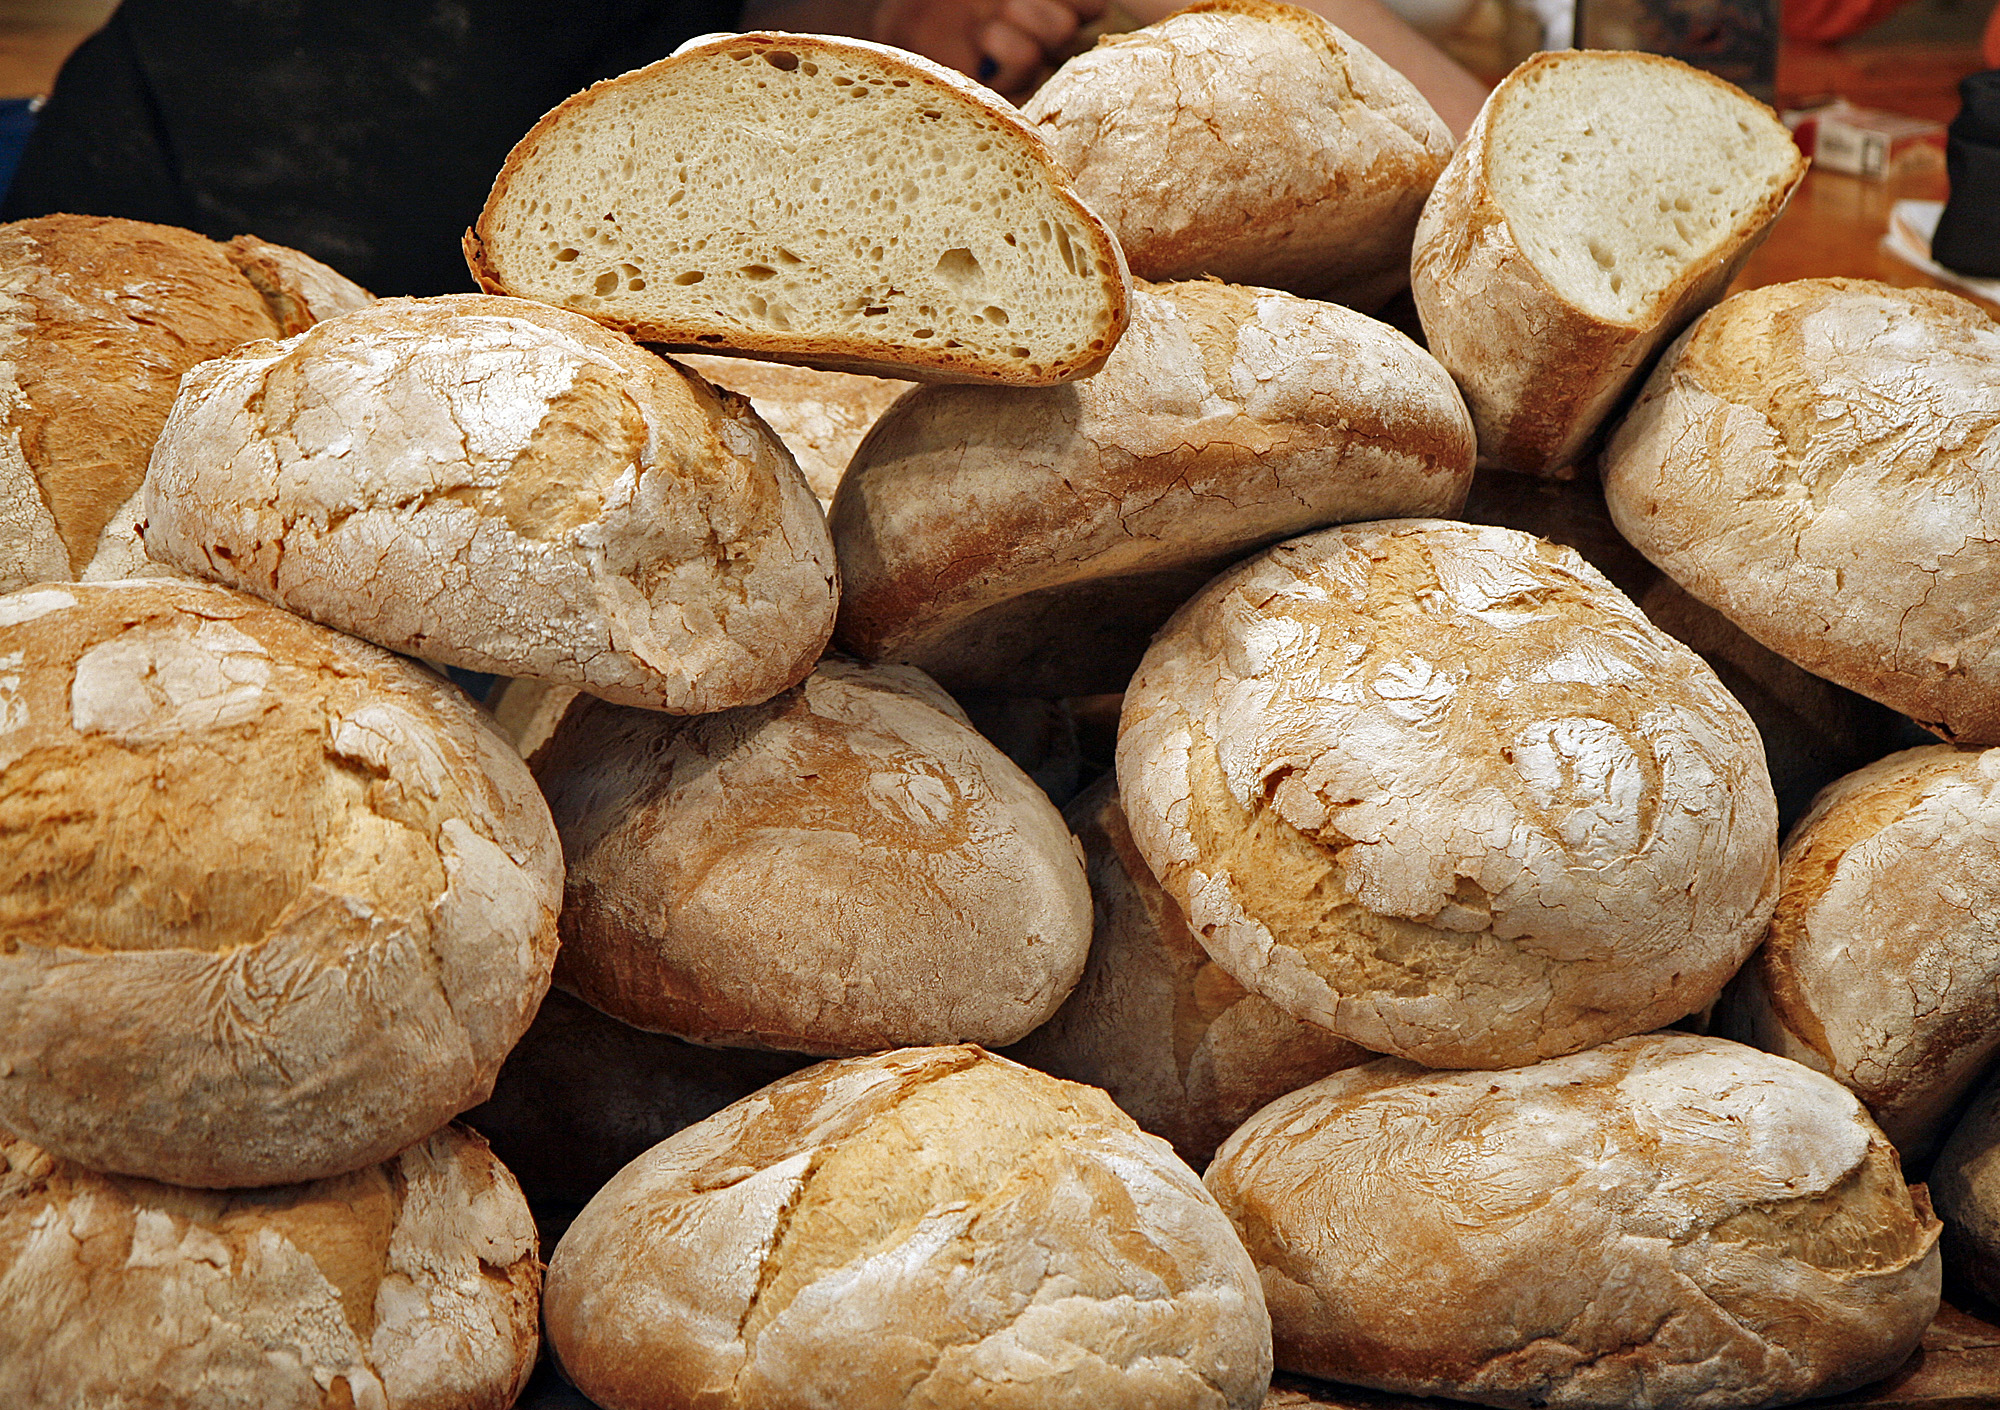 Risk Capital Partners takes Bread stake